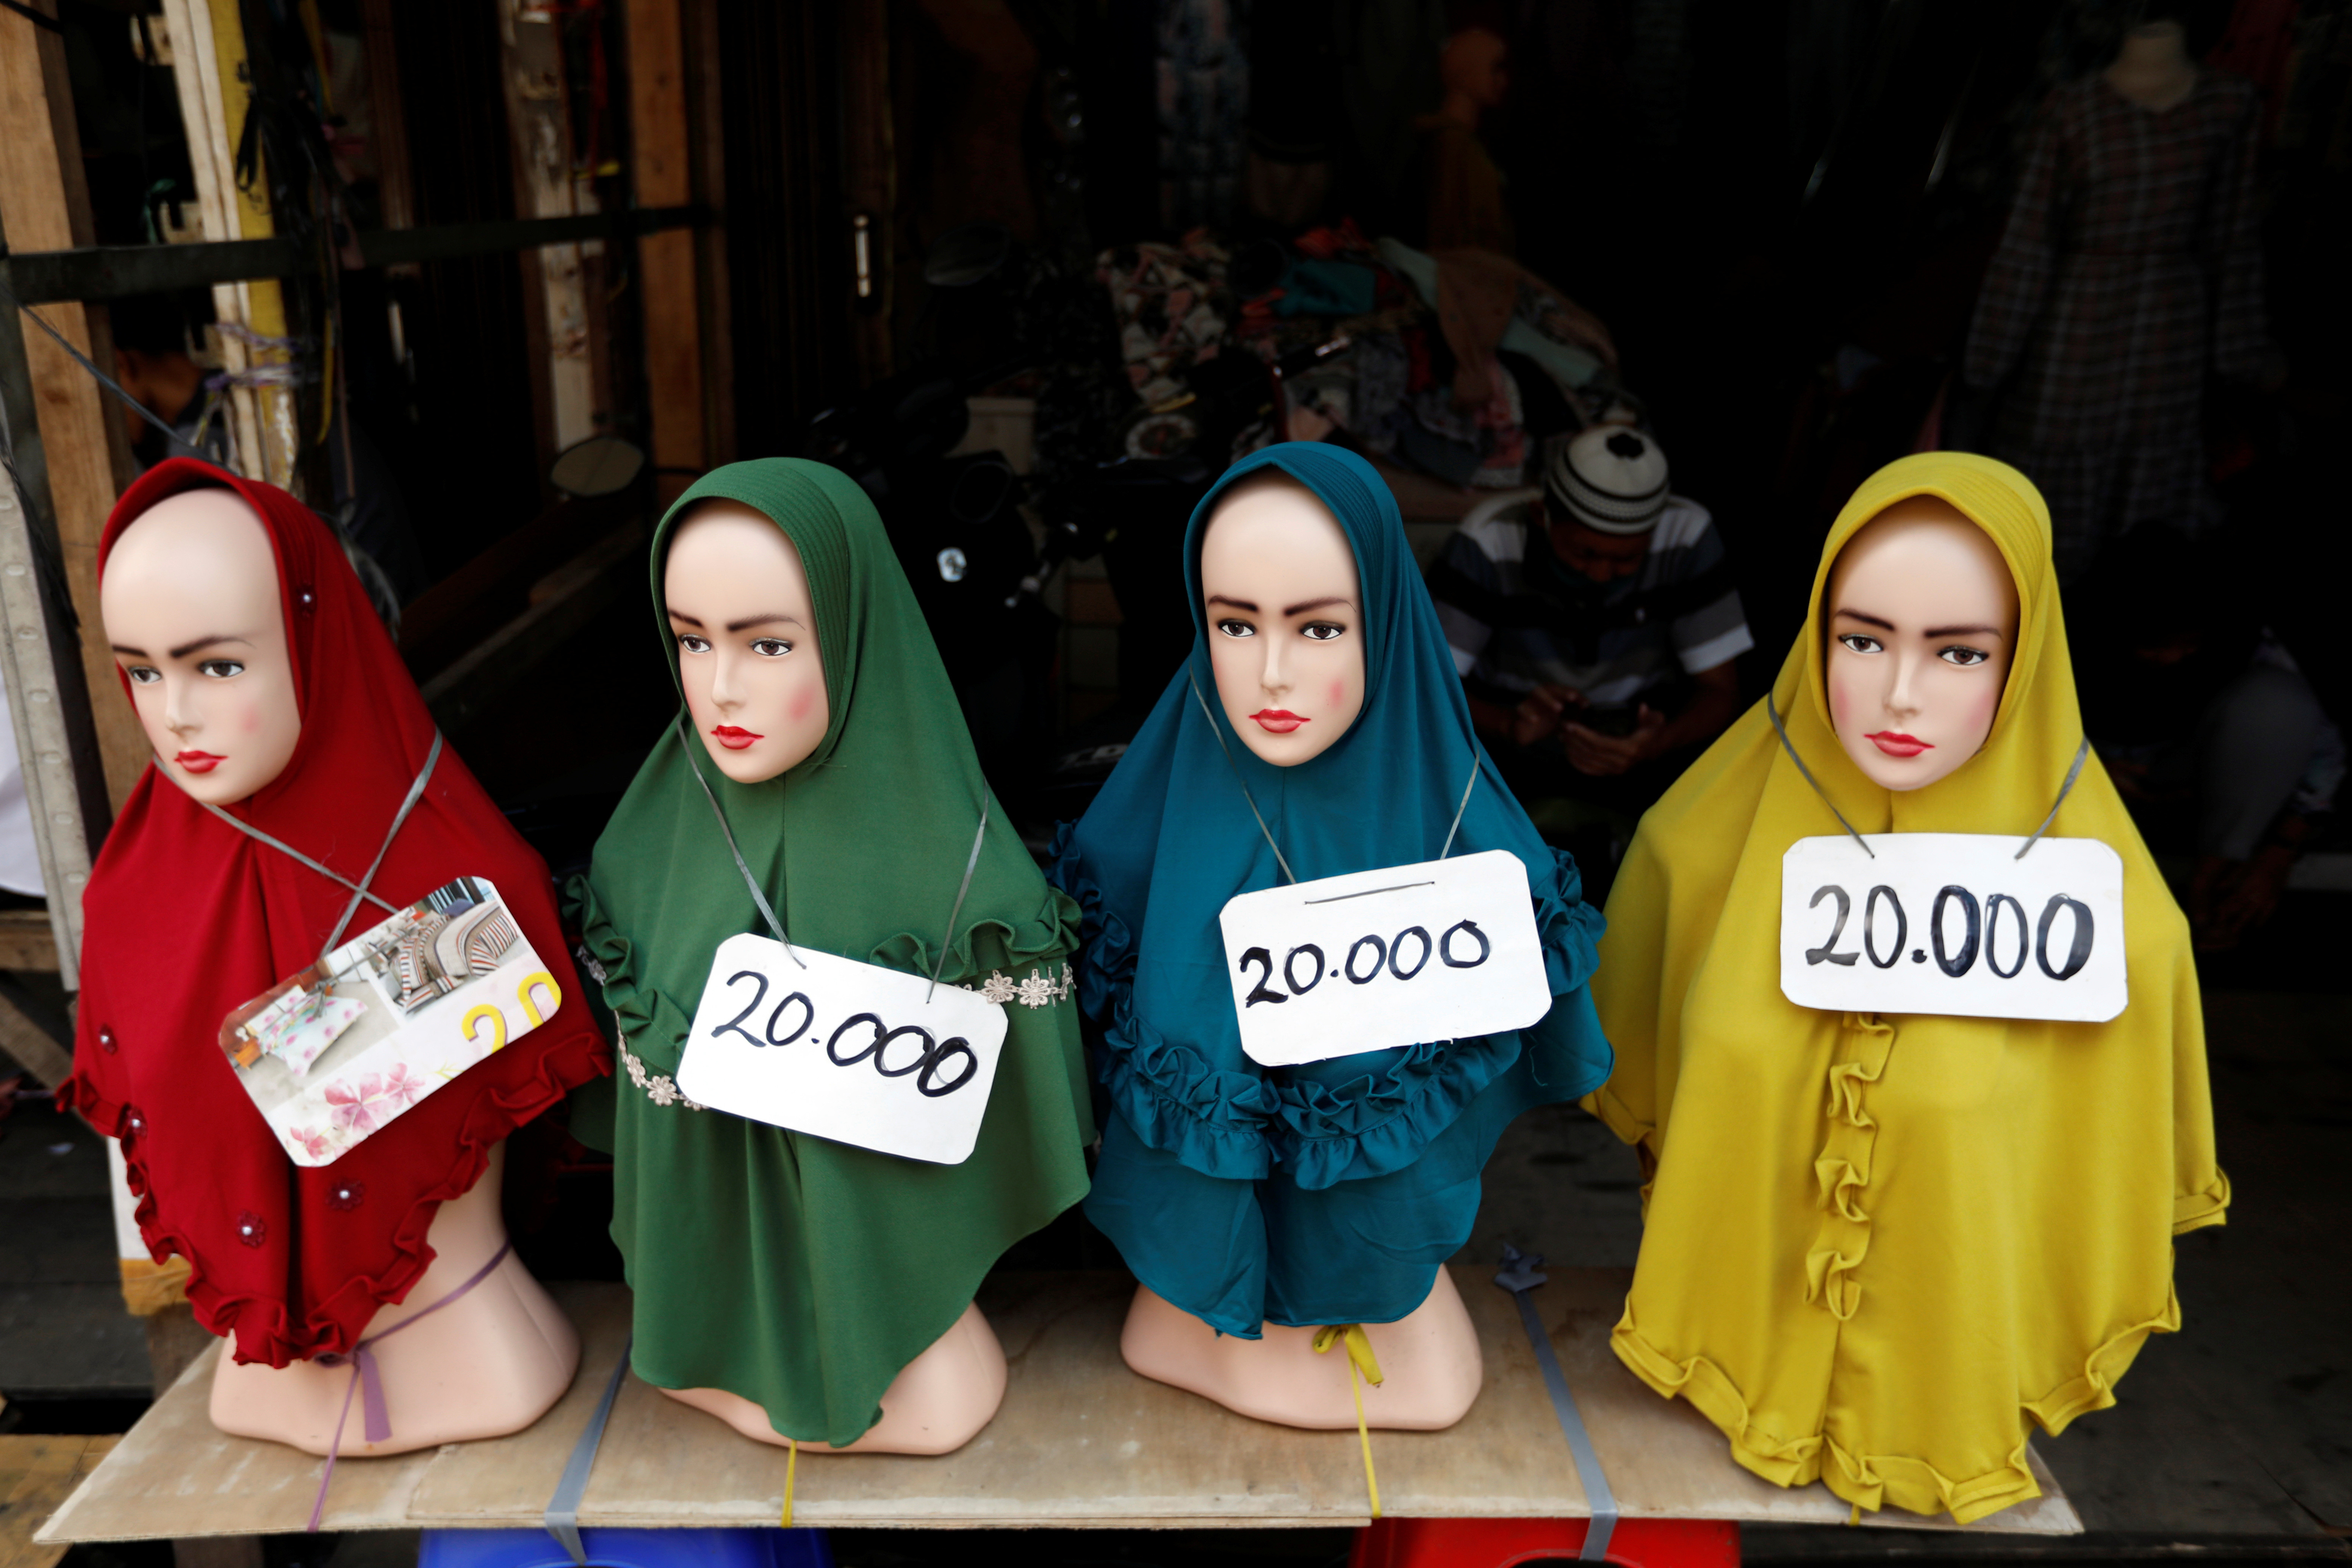 Hijabs on sale at Tanah Abang wholesale market in Jakarta, the largest in south-east Asia.